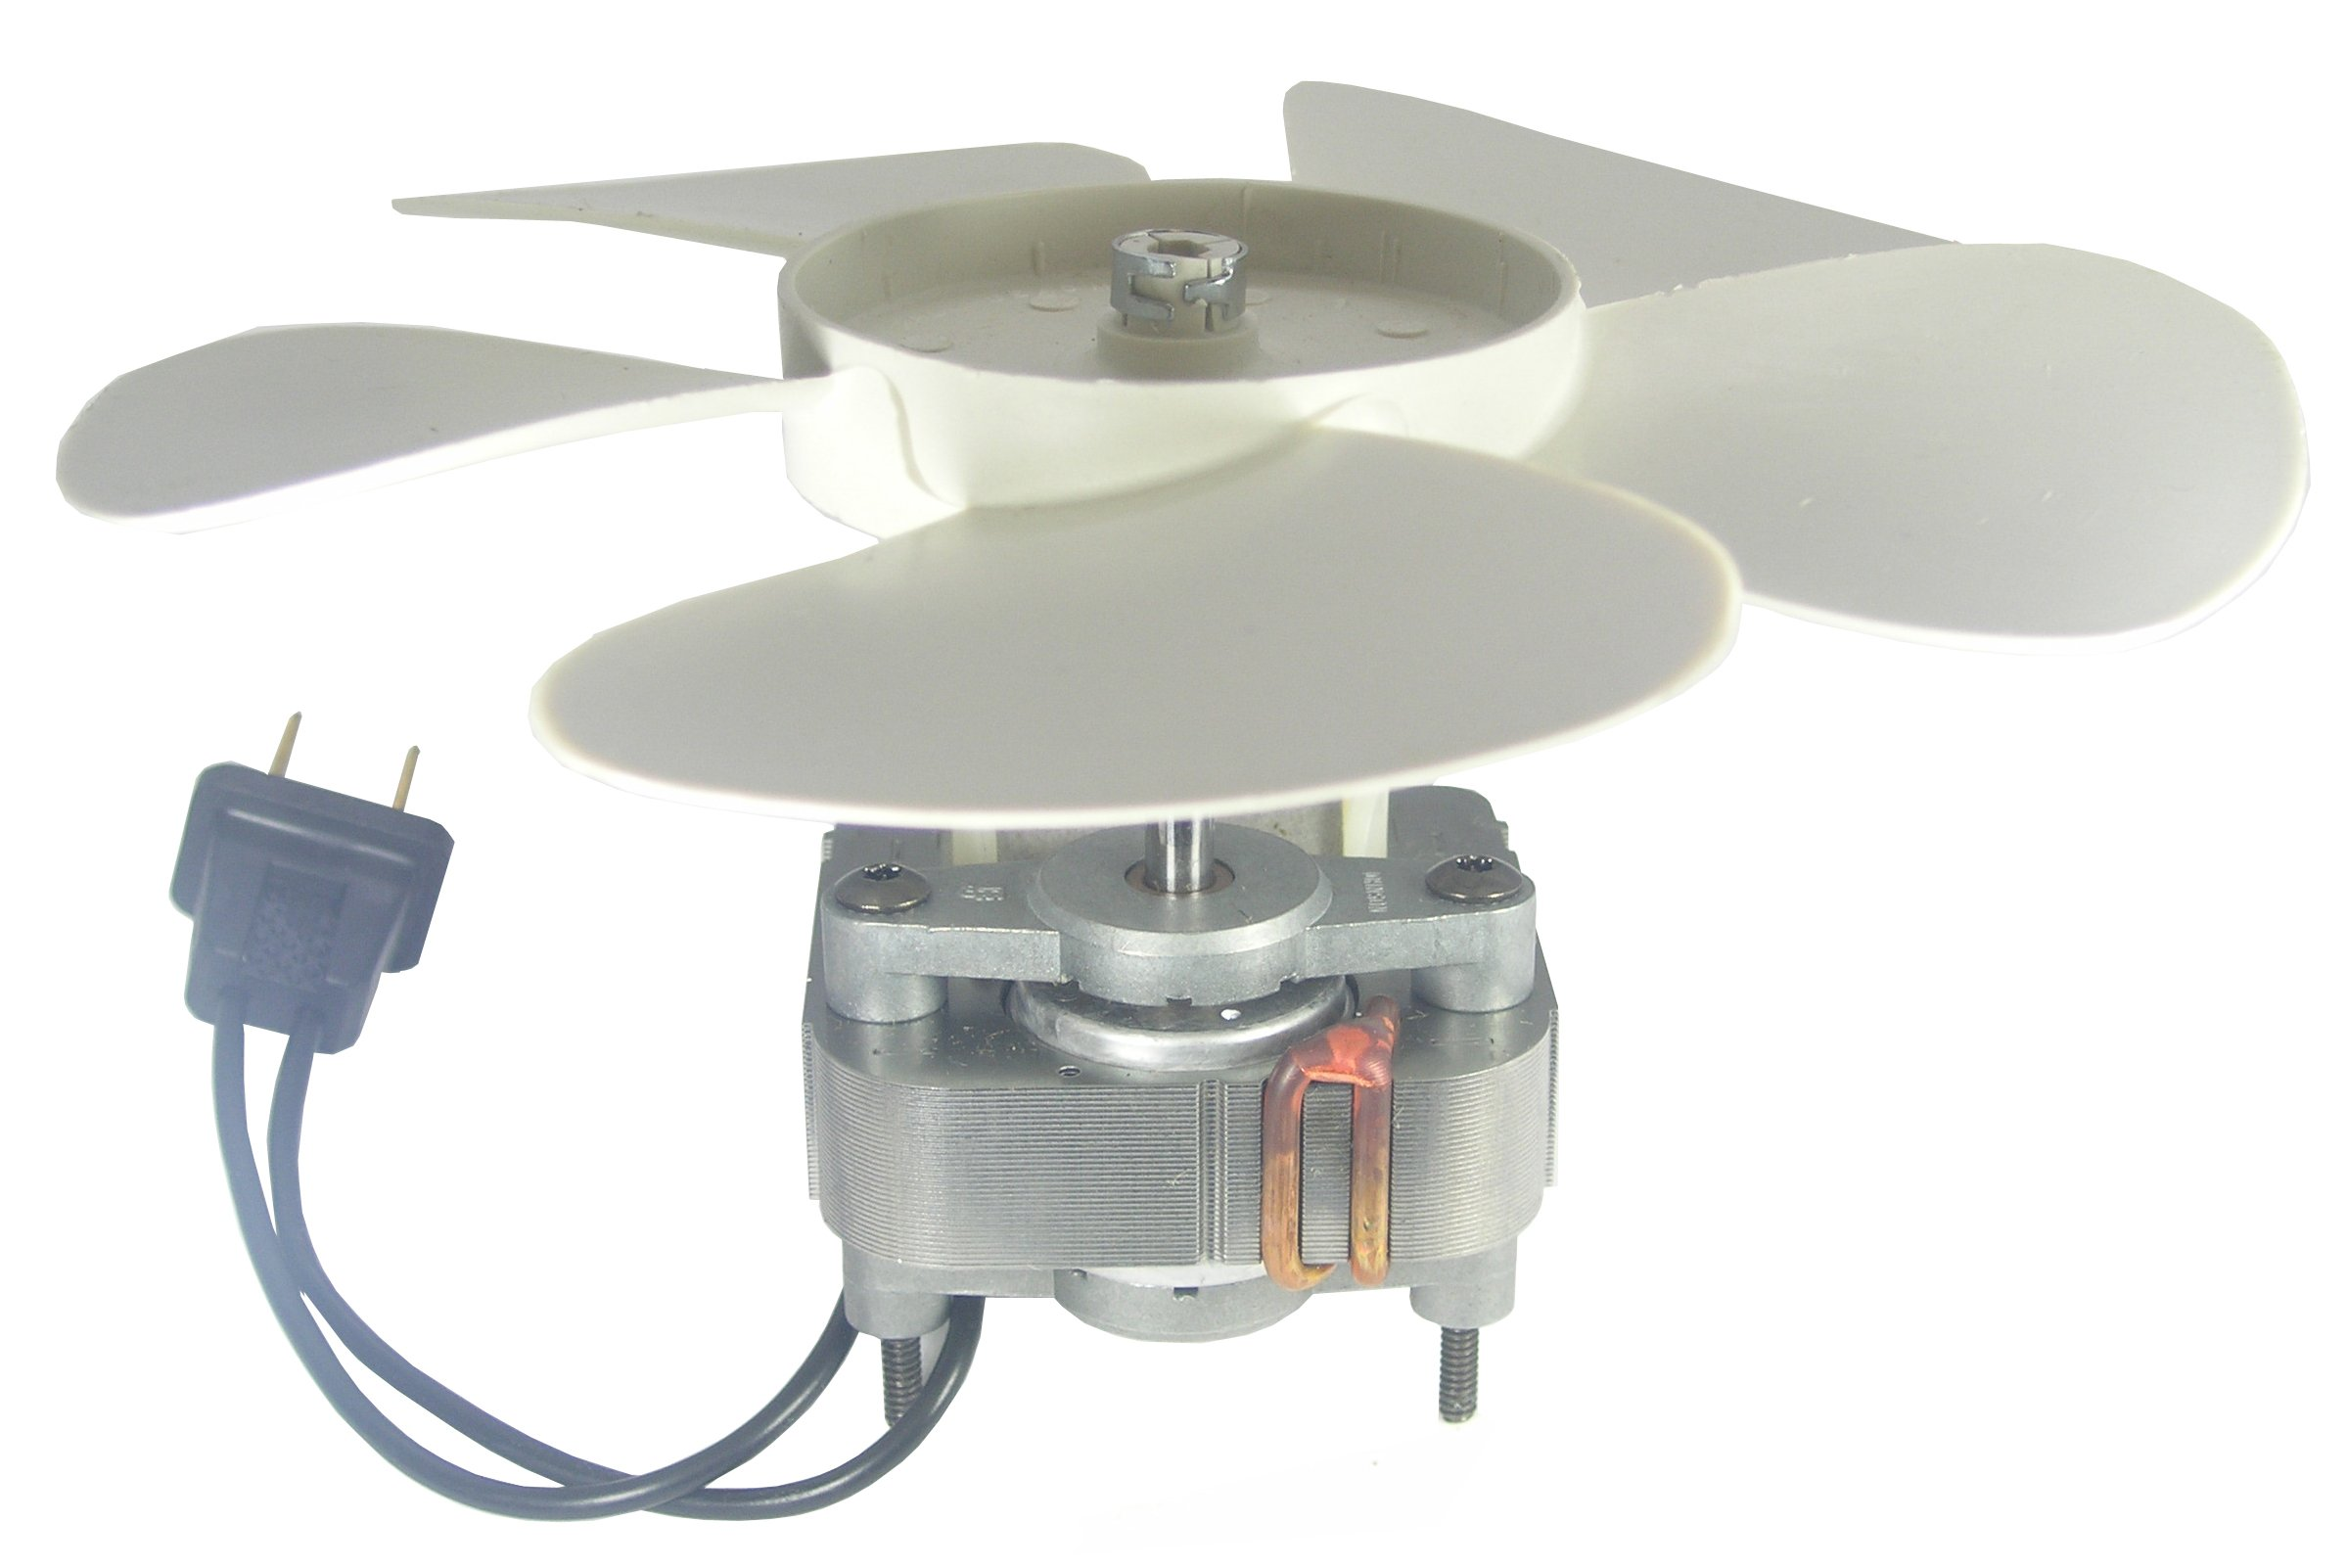 Nutone s1200a000 bathroom fan motor assembly ebay for Emerson pryne exhaust fan replacement motor